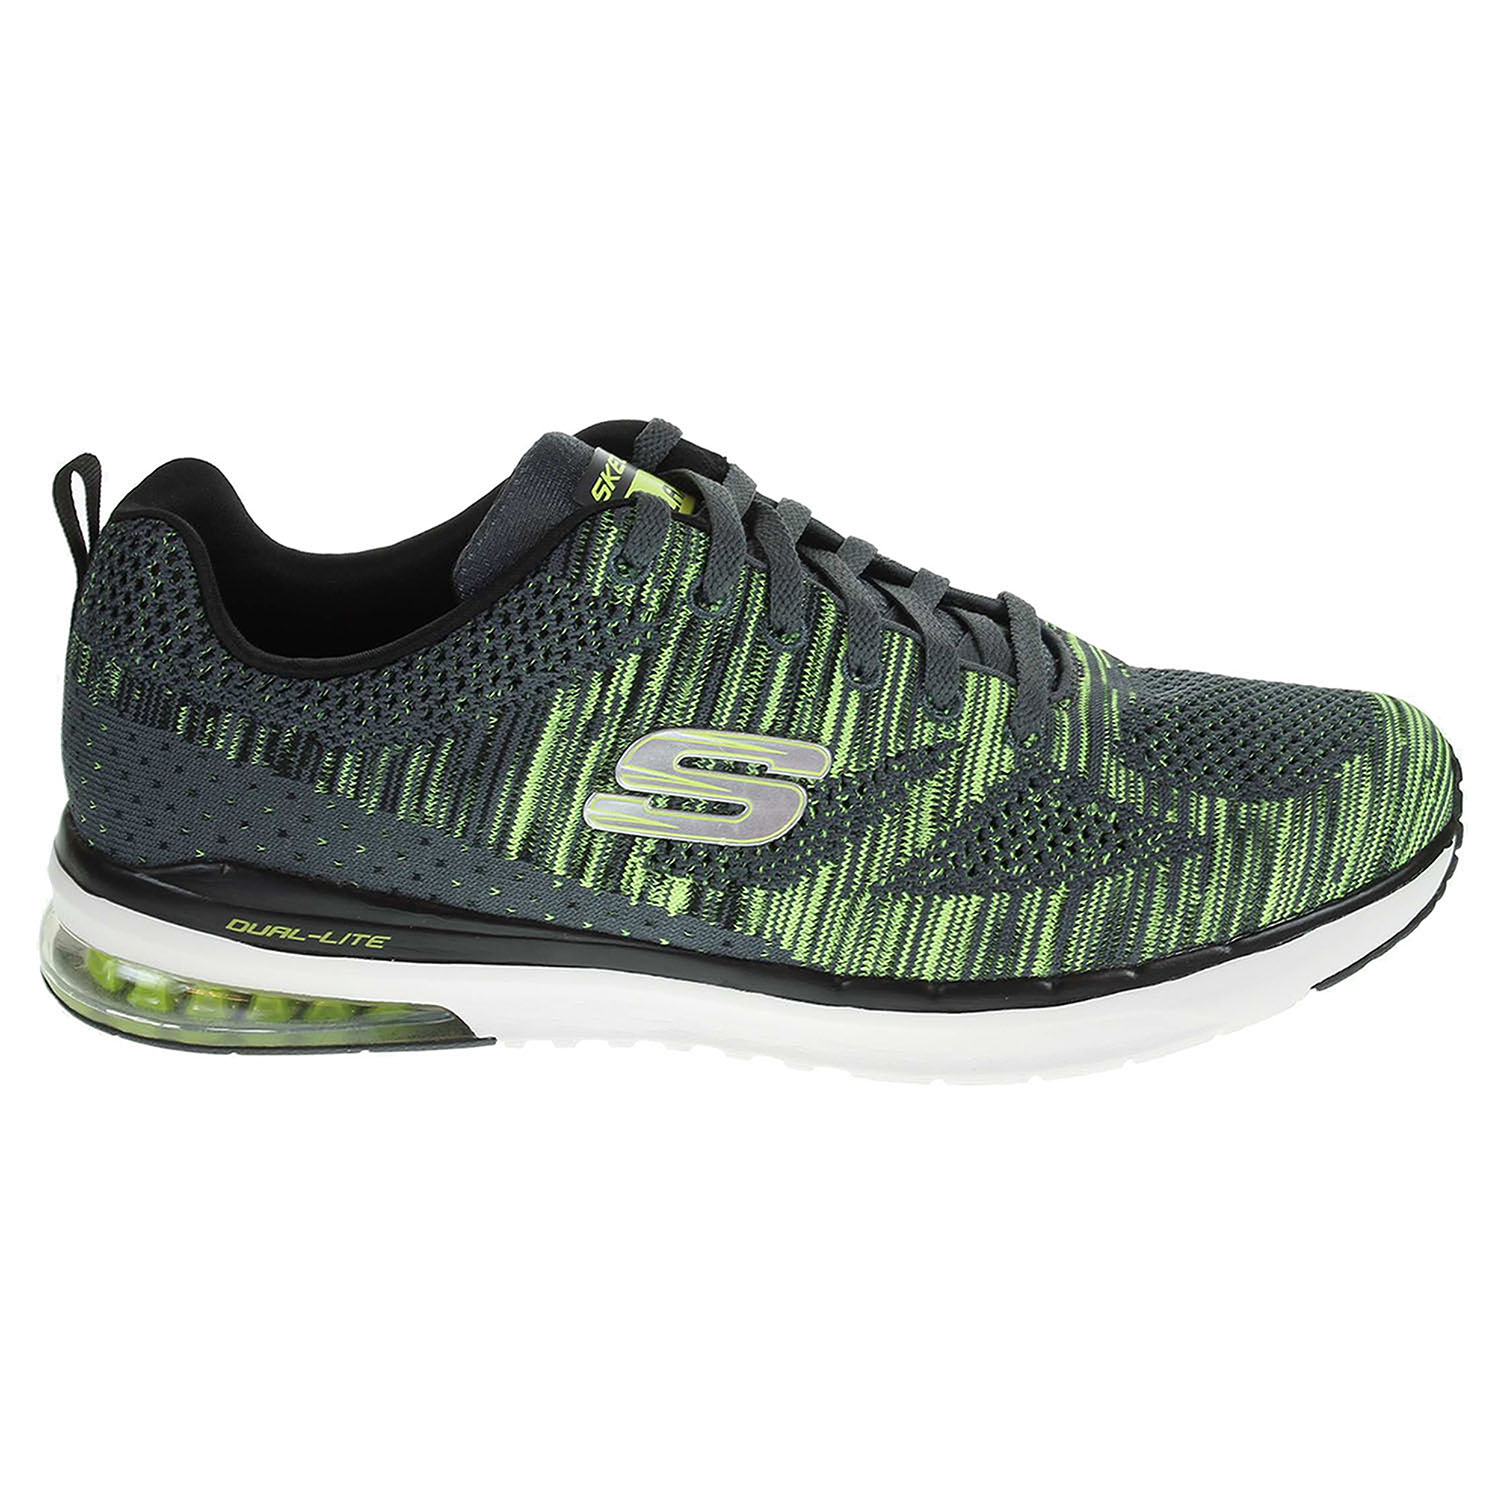 Skechers Rapid Fire charcoal-lime 42